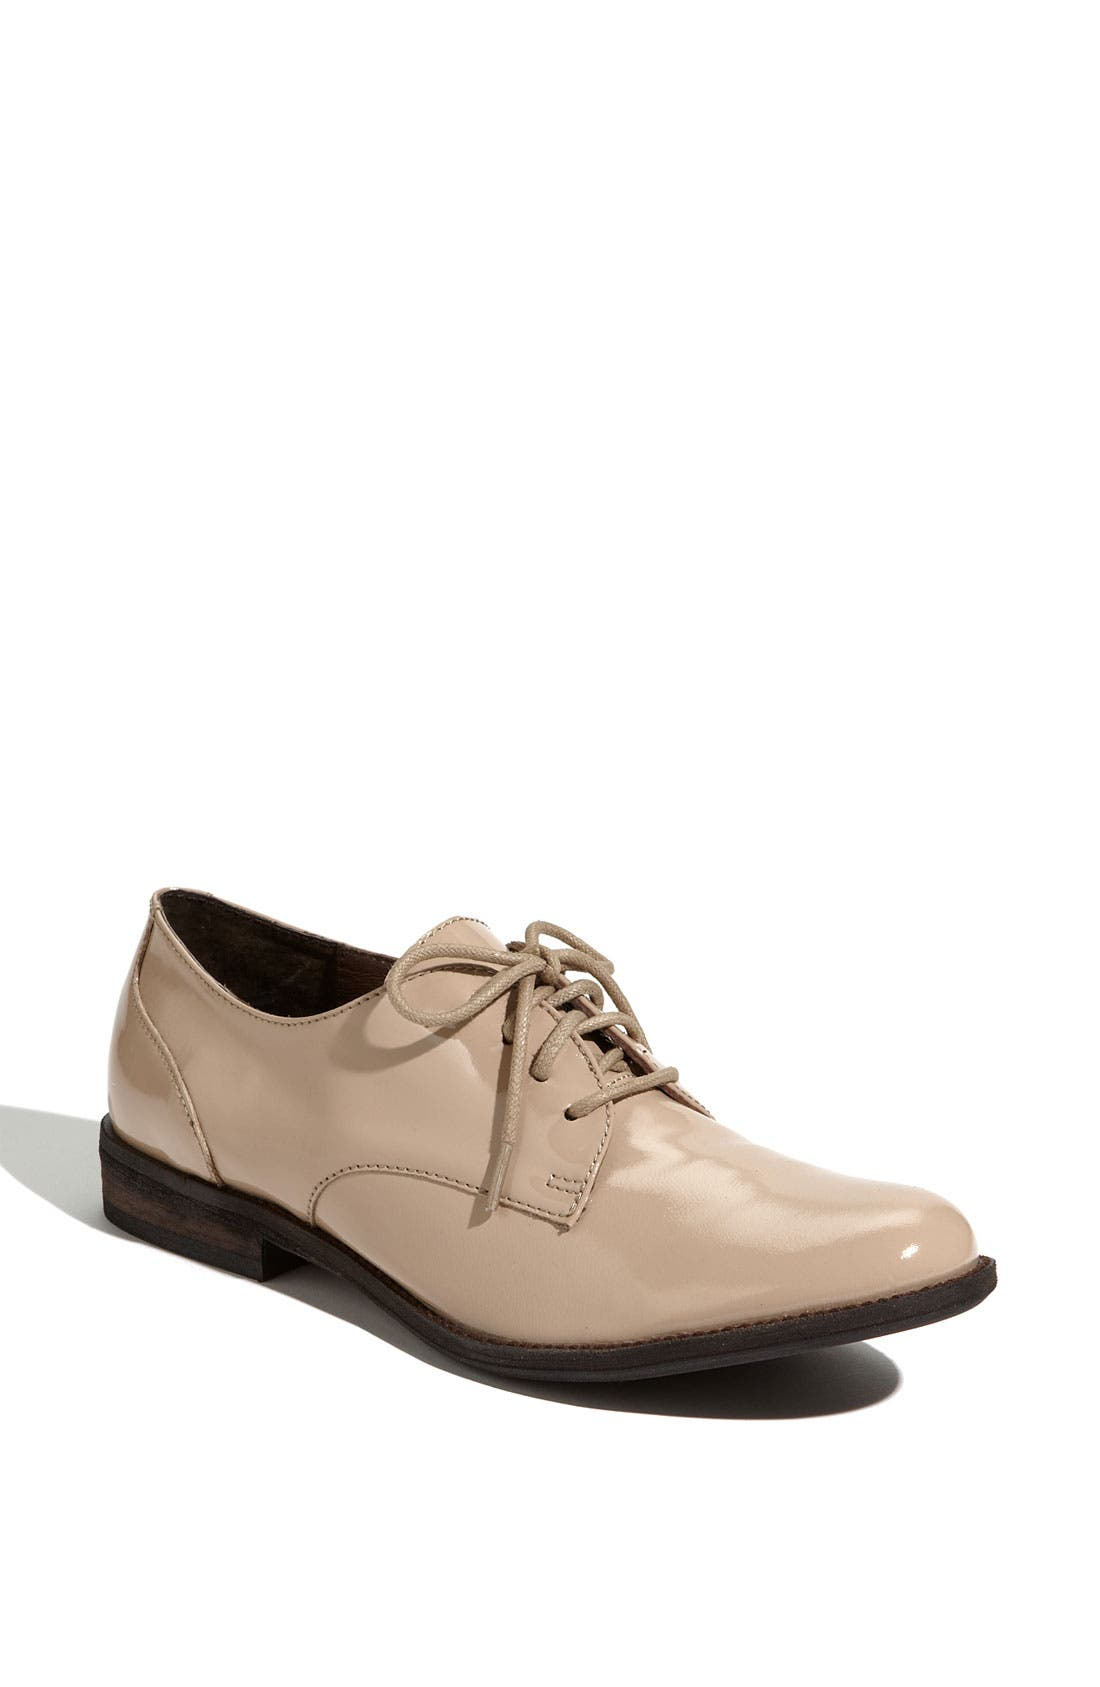 Alternate Image 1 Selected - Halogen 'Hayley' Patent Oxford